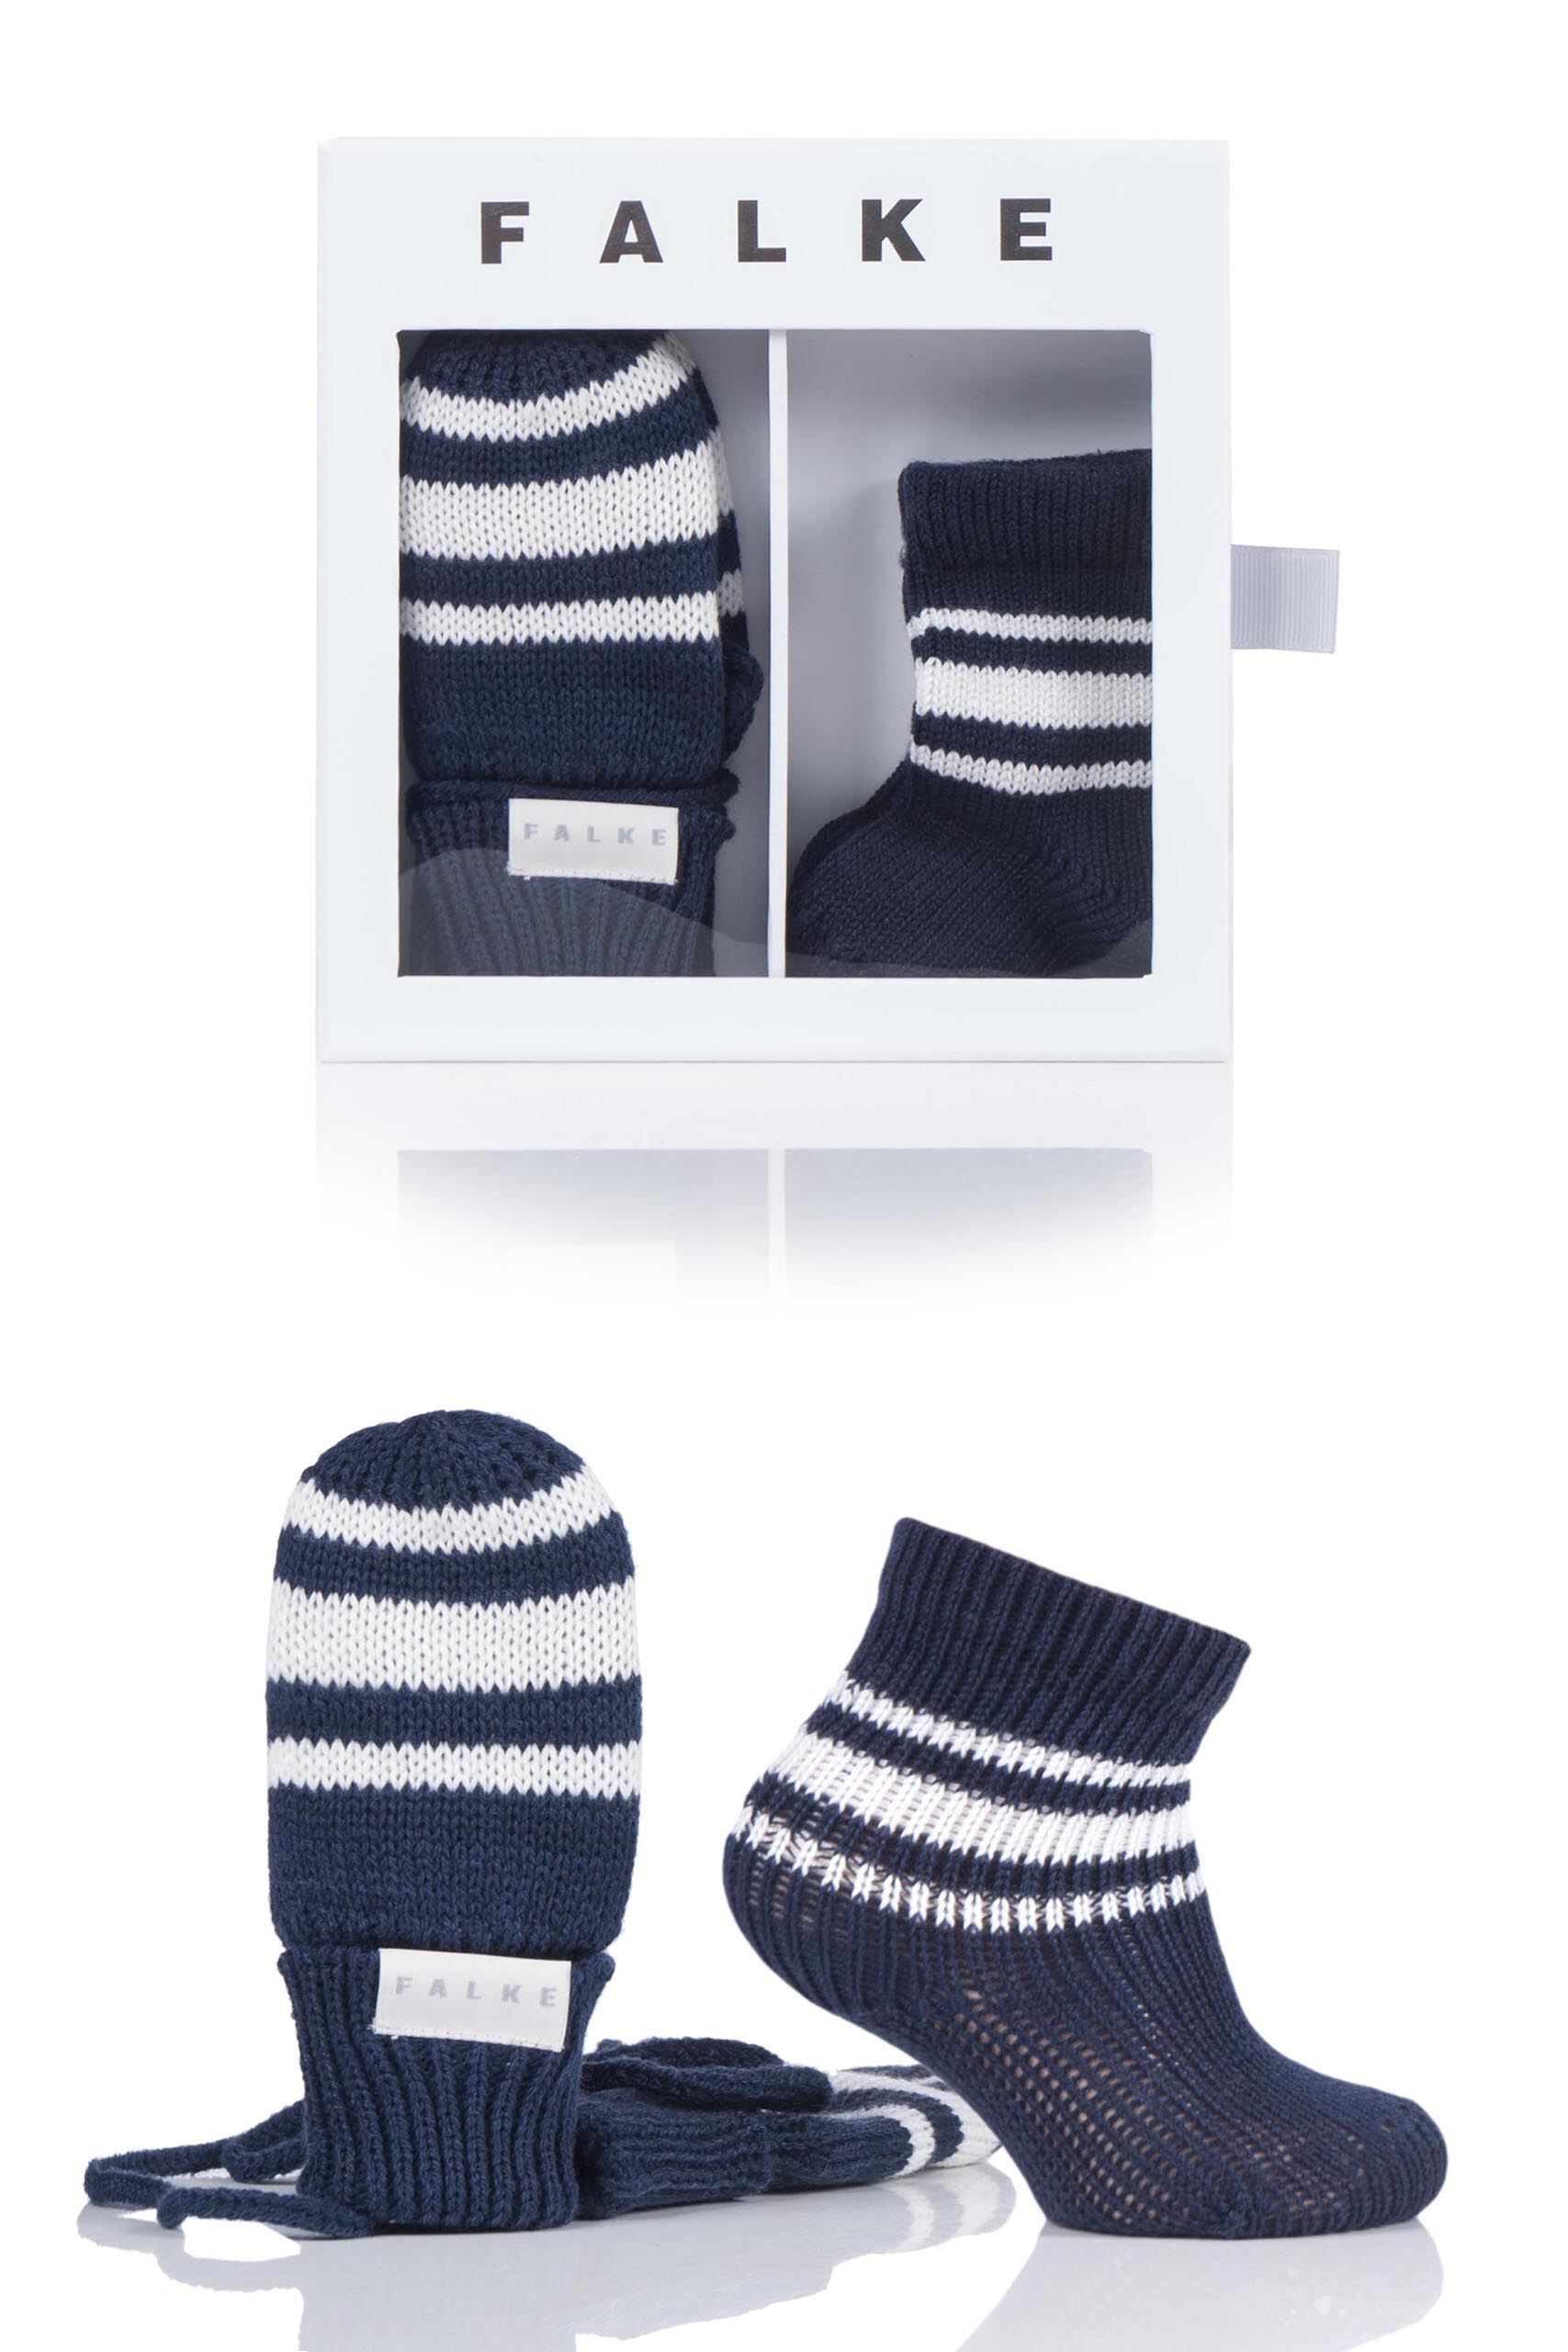 Image of 1 Pack Marine Babies Socks and Mittens Gift Box Kids Unisex 1-6 Months - Falke